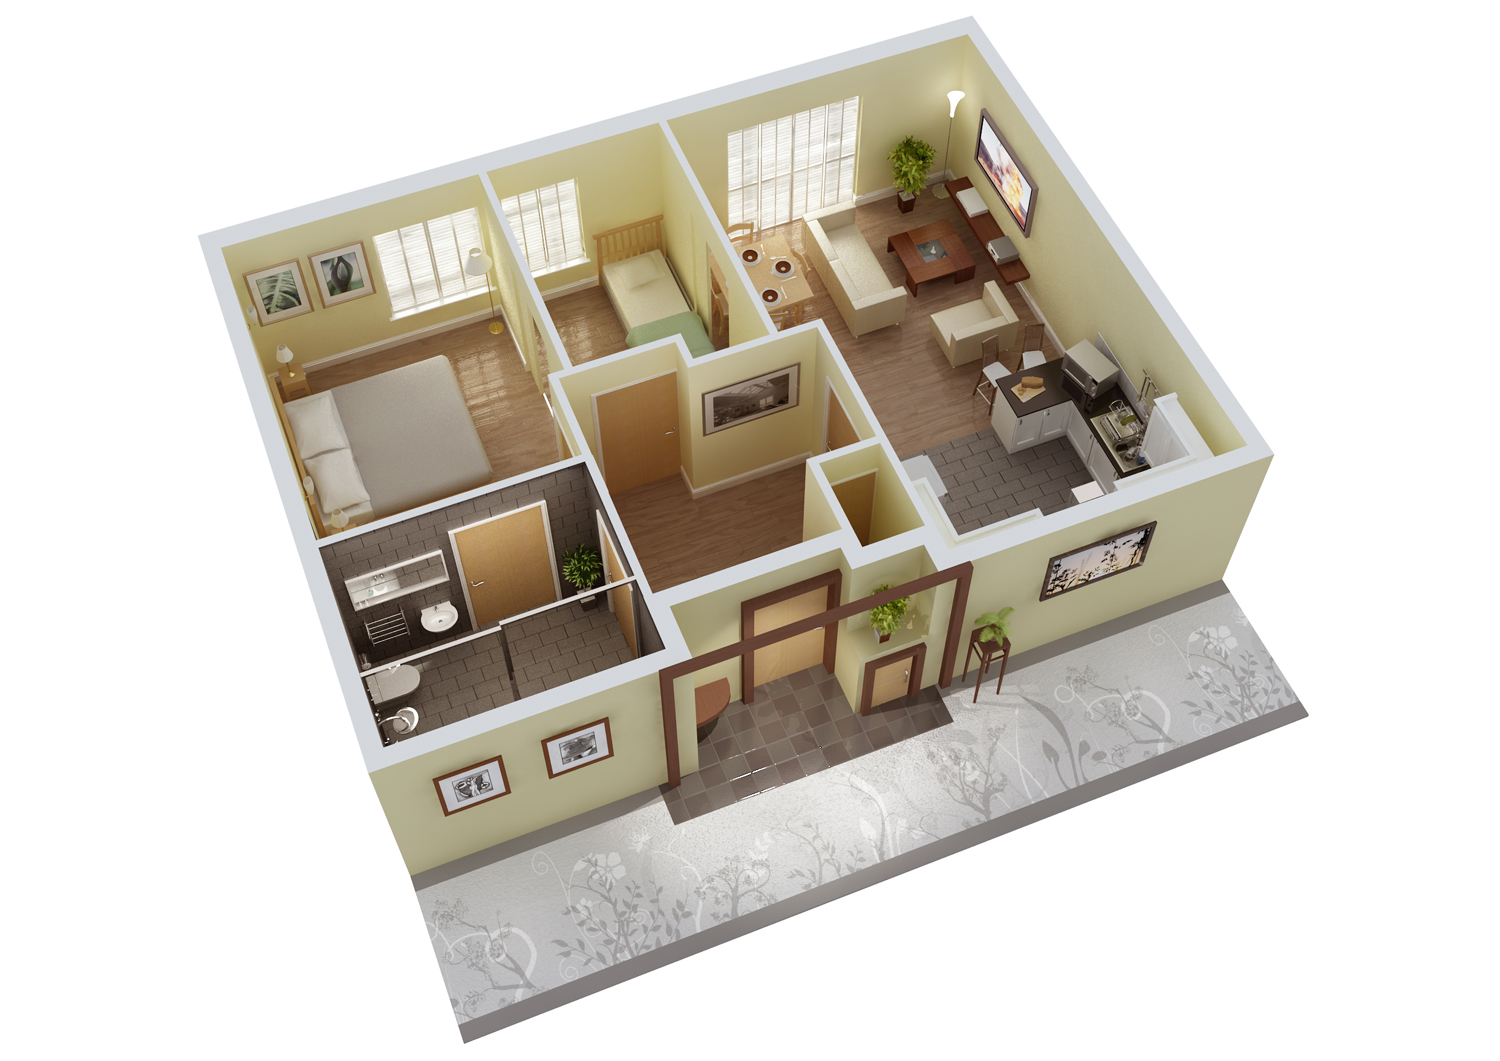 Mathematics resources project 3d floor plan for Project home designs